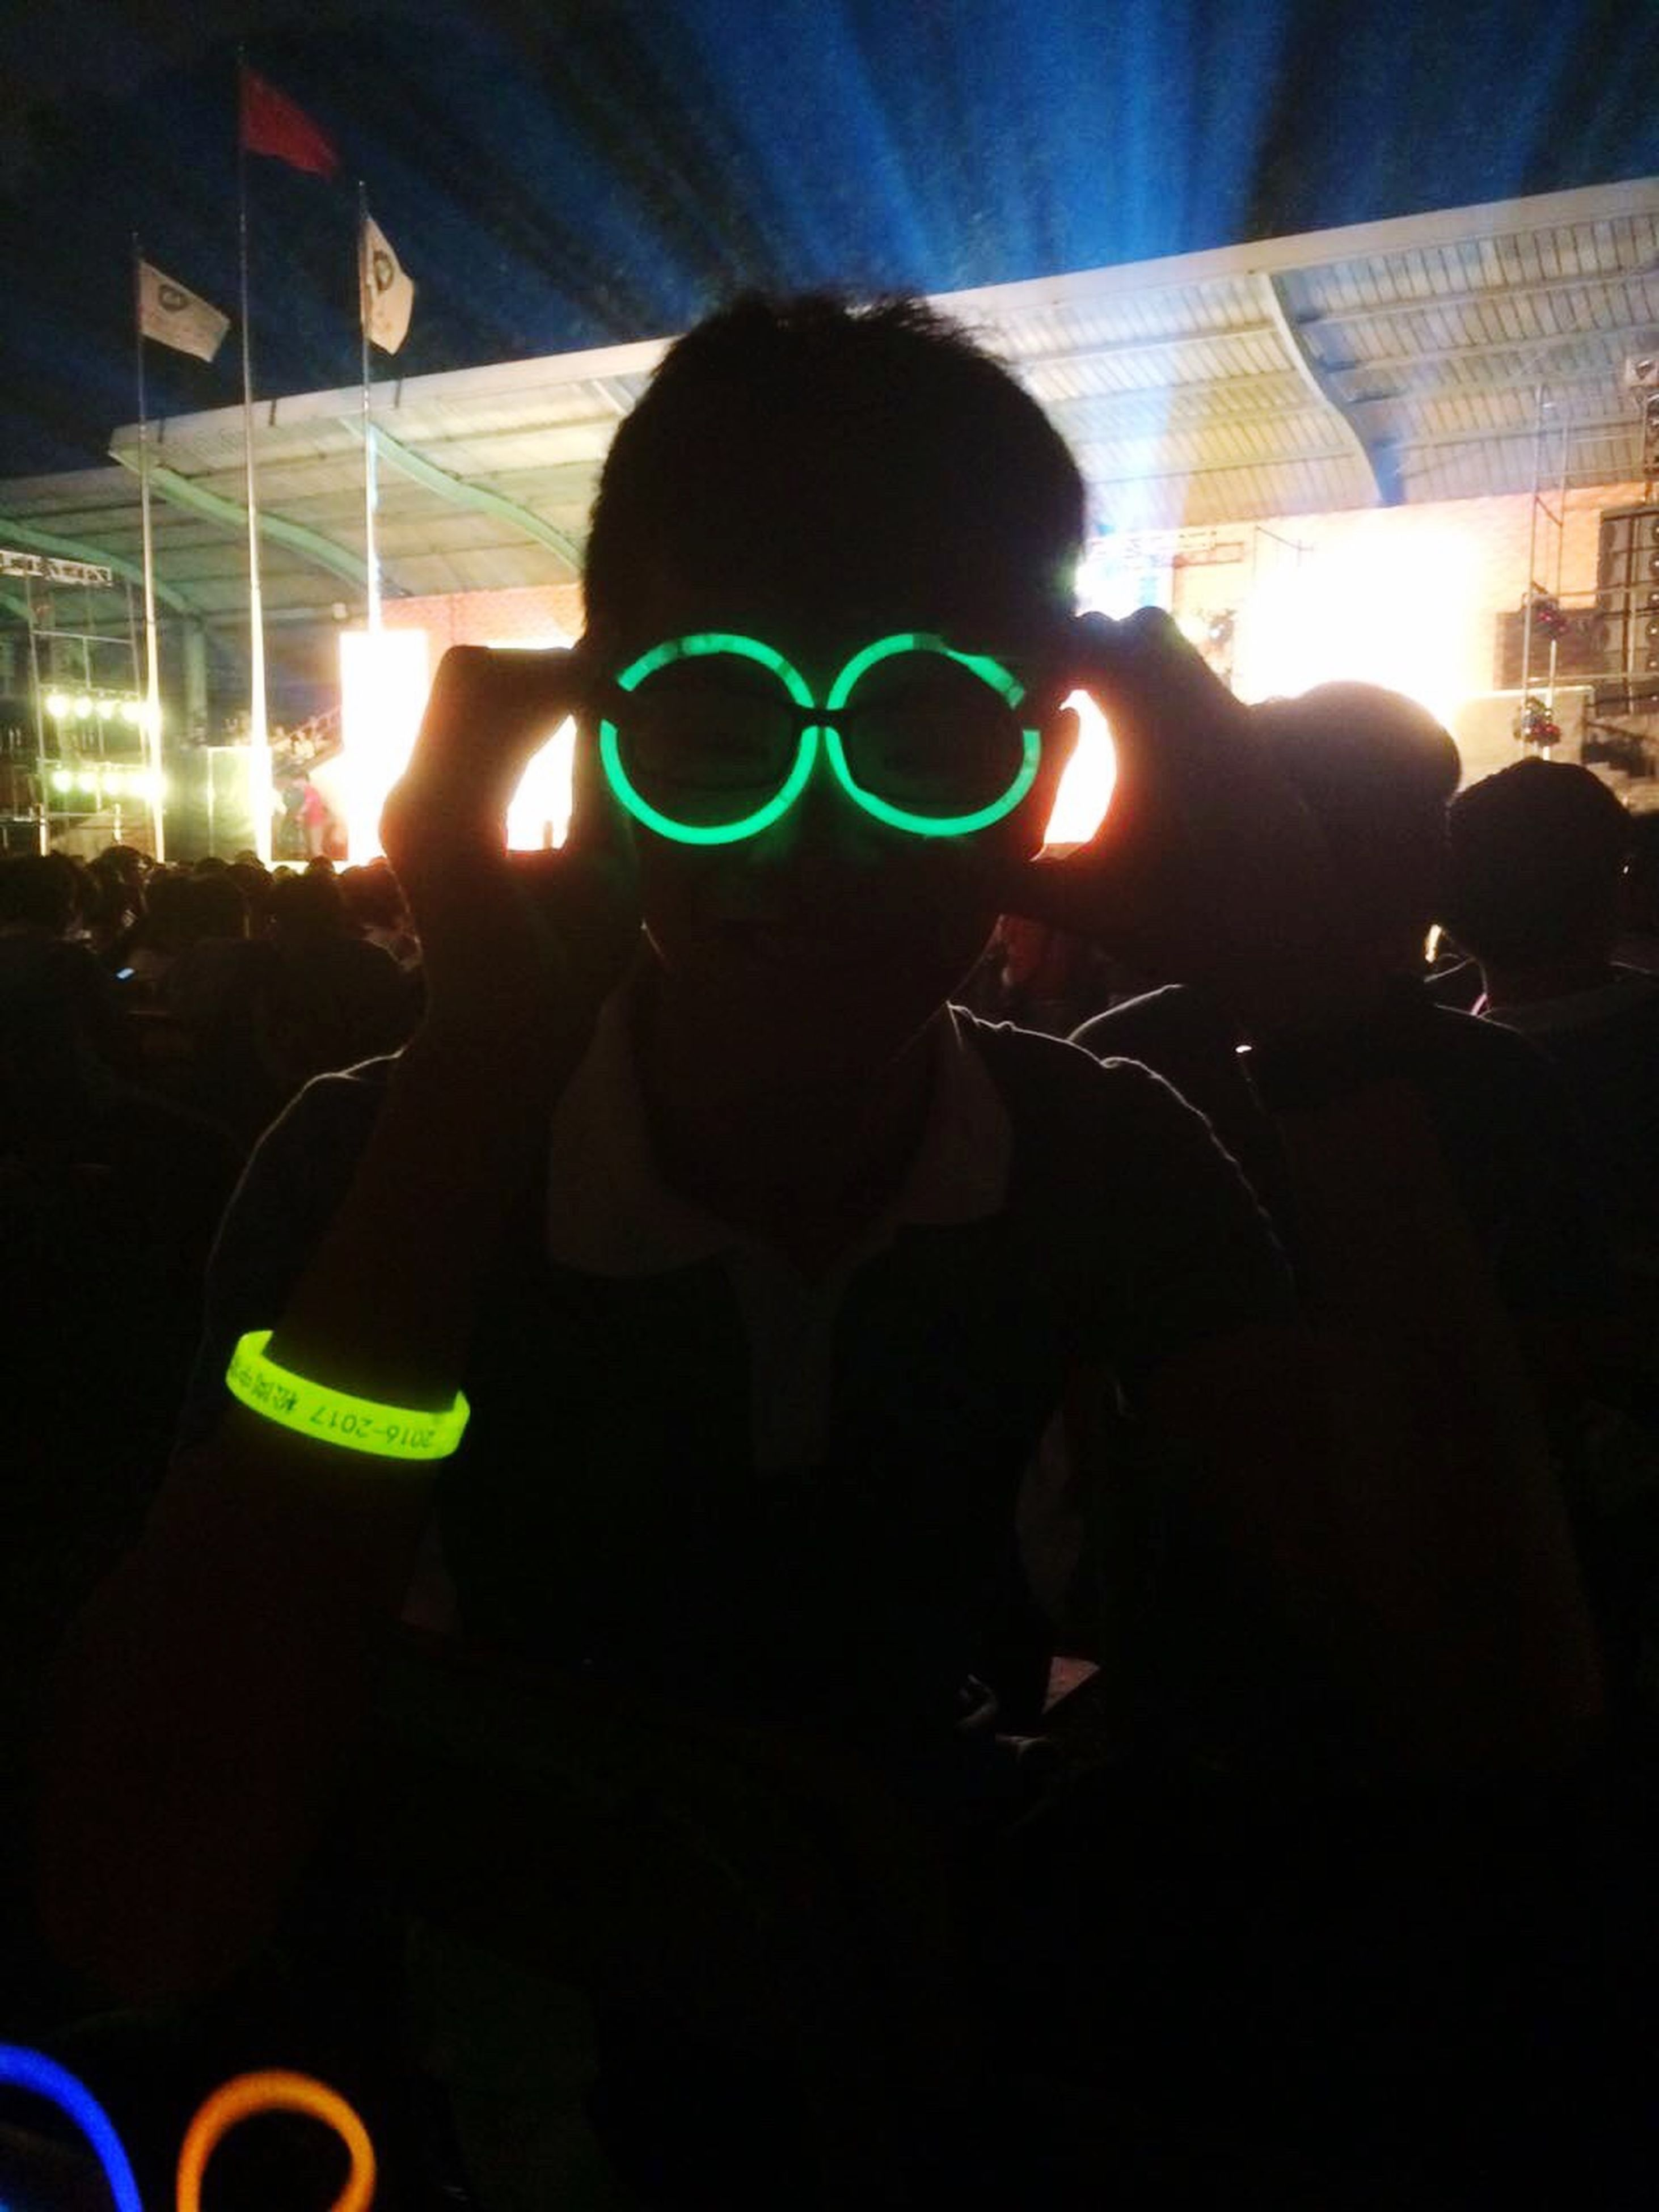 illuminated, indoors, leisure activity, lifestyles, night, arts culture and entertainment, men, light - natural phenomenon, music, fun, person, multi colored, enjoyment, holding, nightclub, unrecognizable person, technology